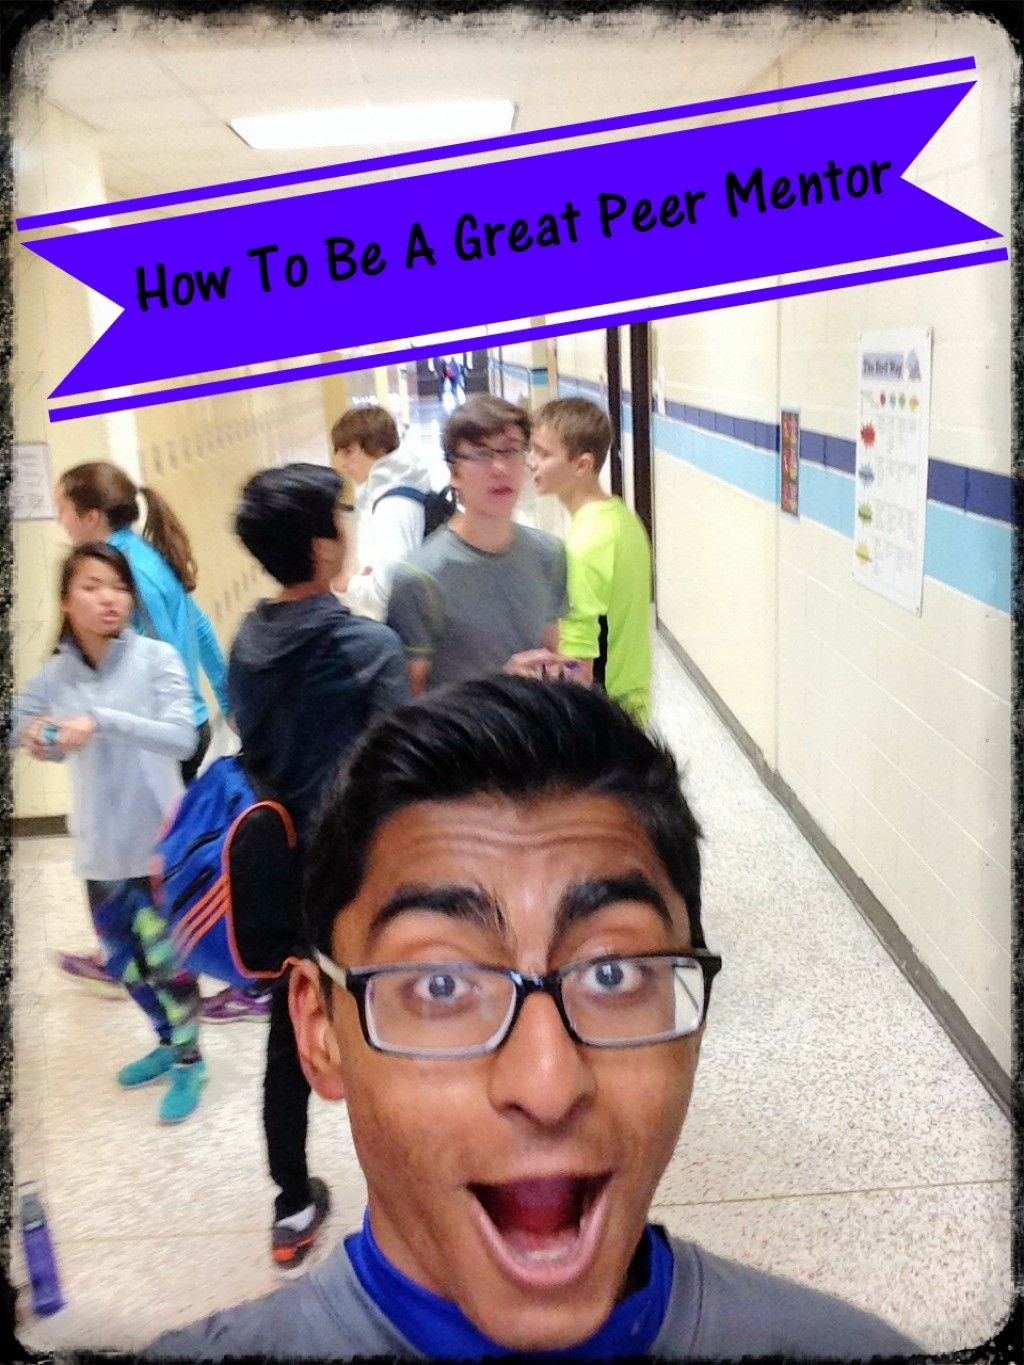 Peer mentors are student leaders who provide